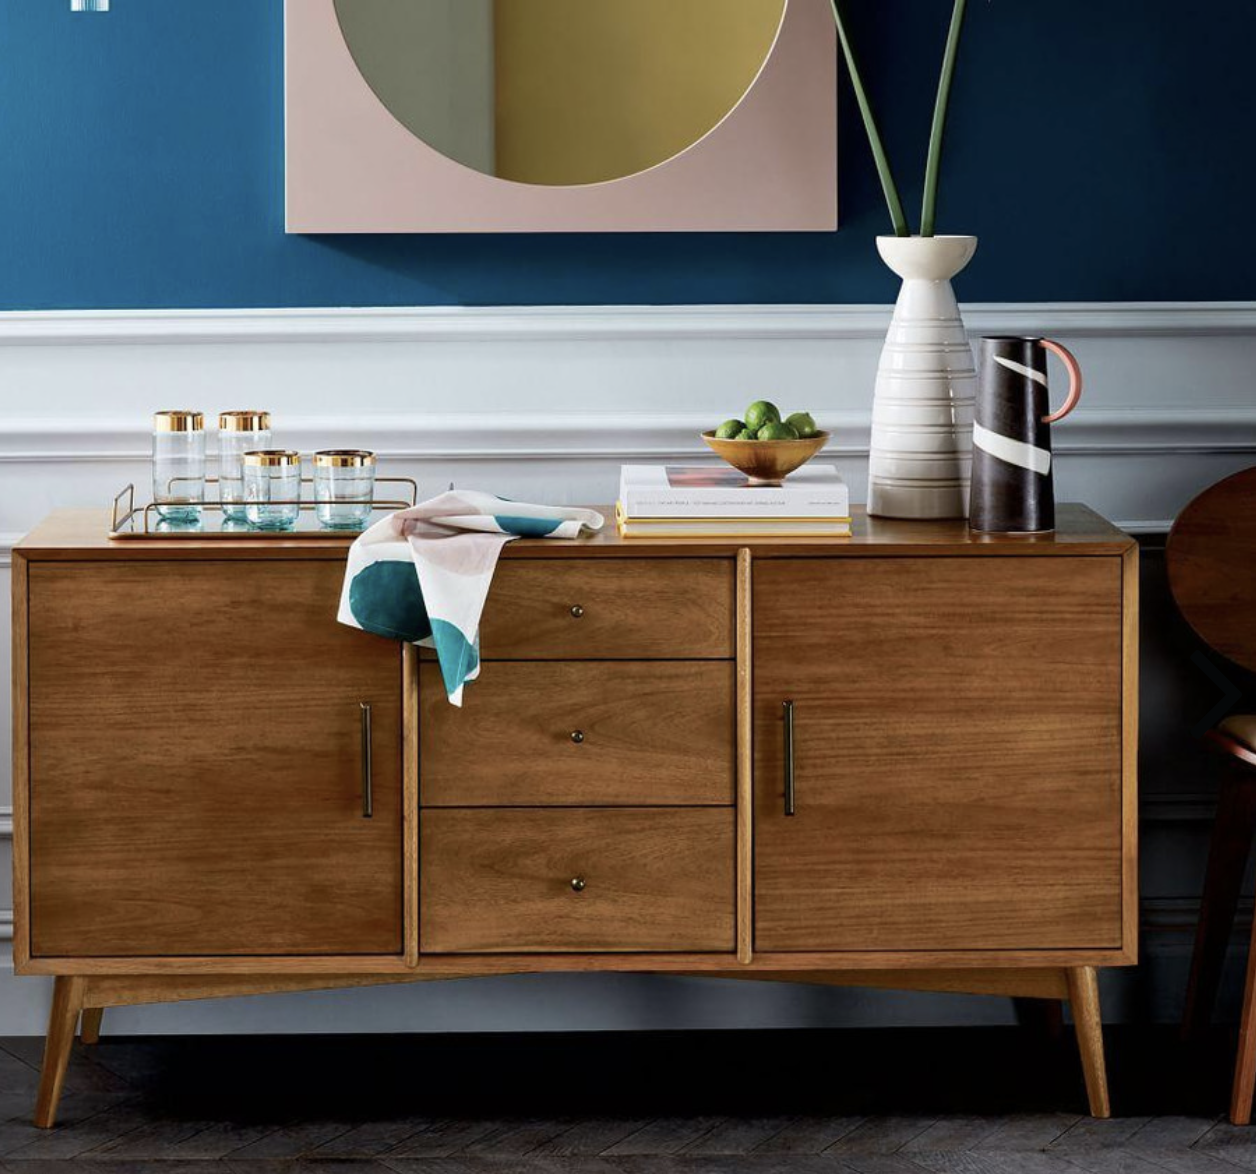 West Elm's Mid Century Sideboard in acorn, sustainable eucalyptus with acacia veneer